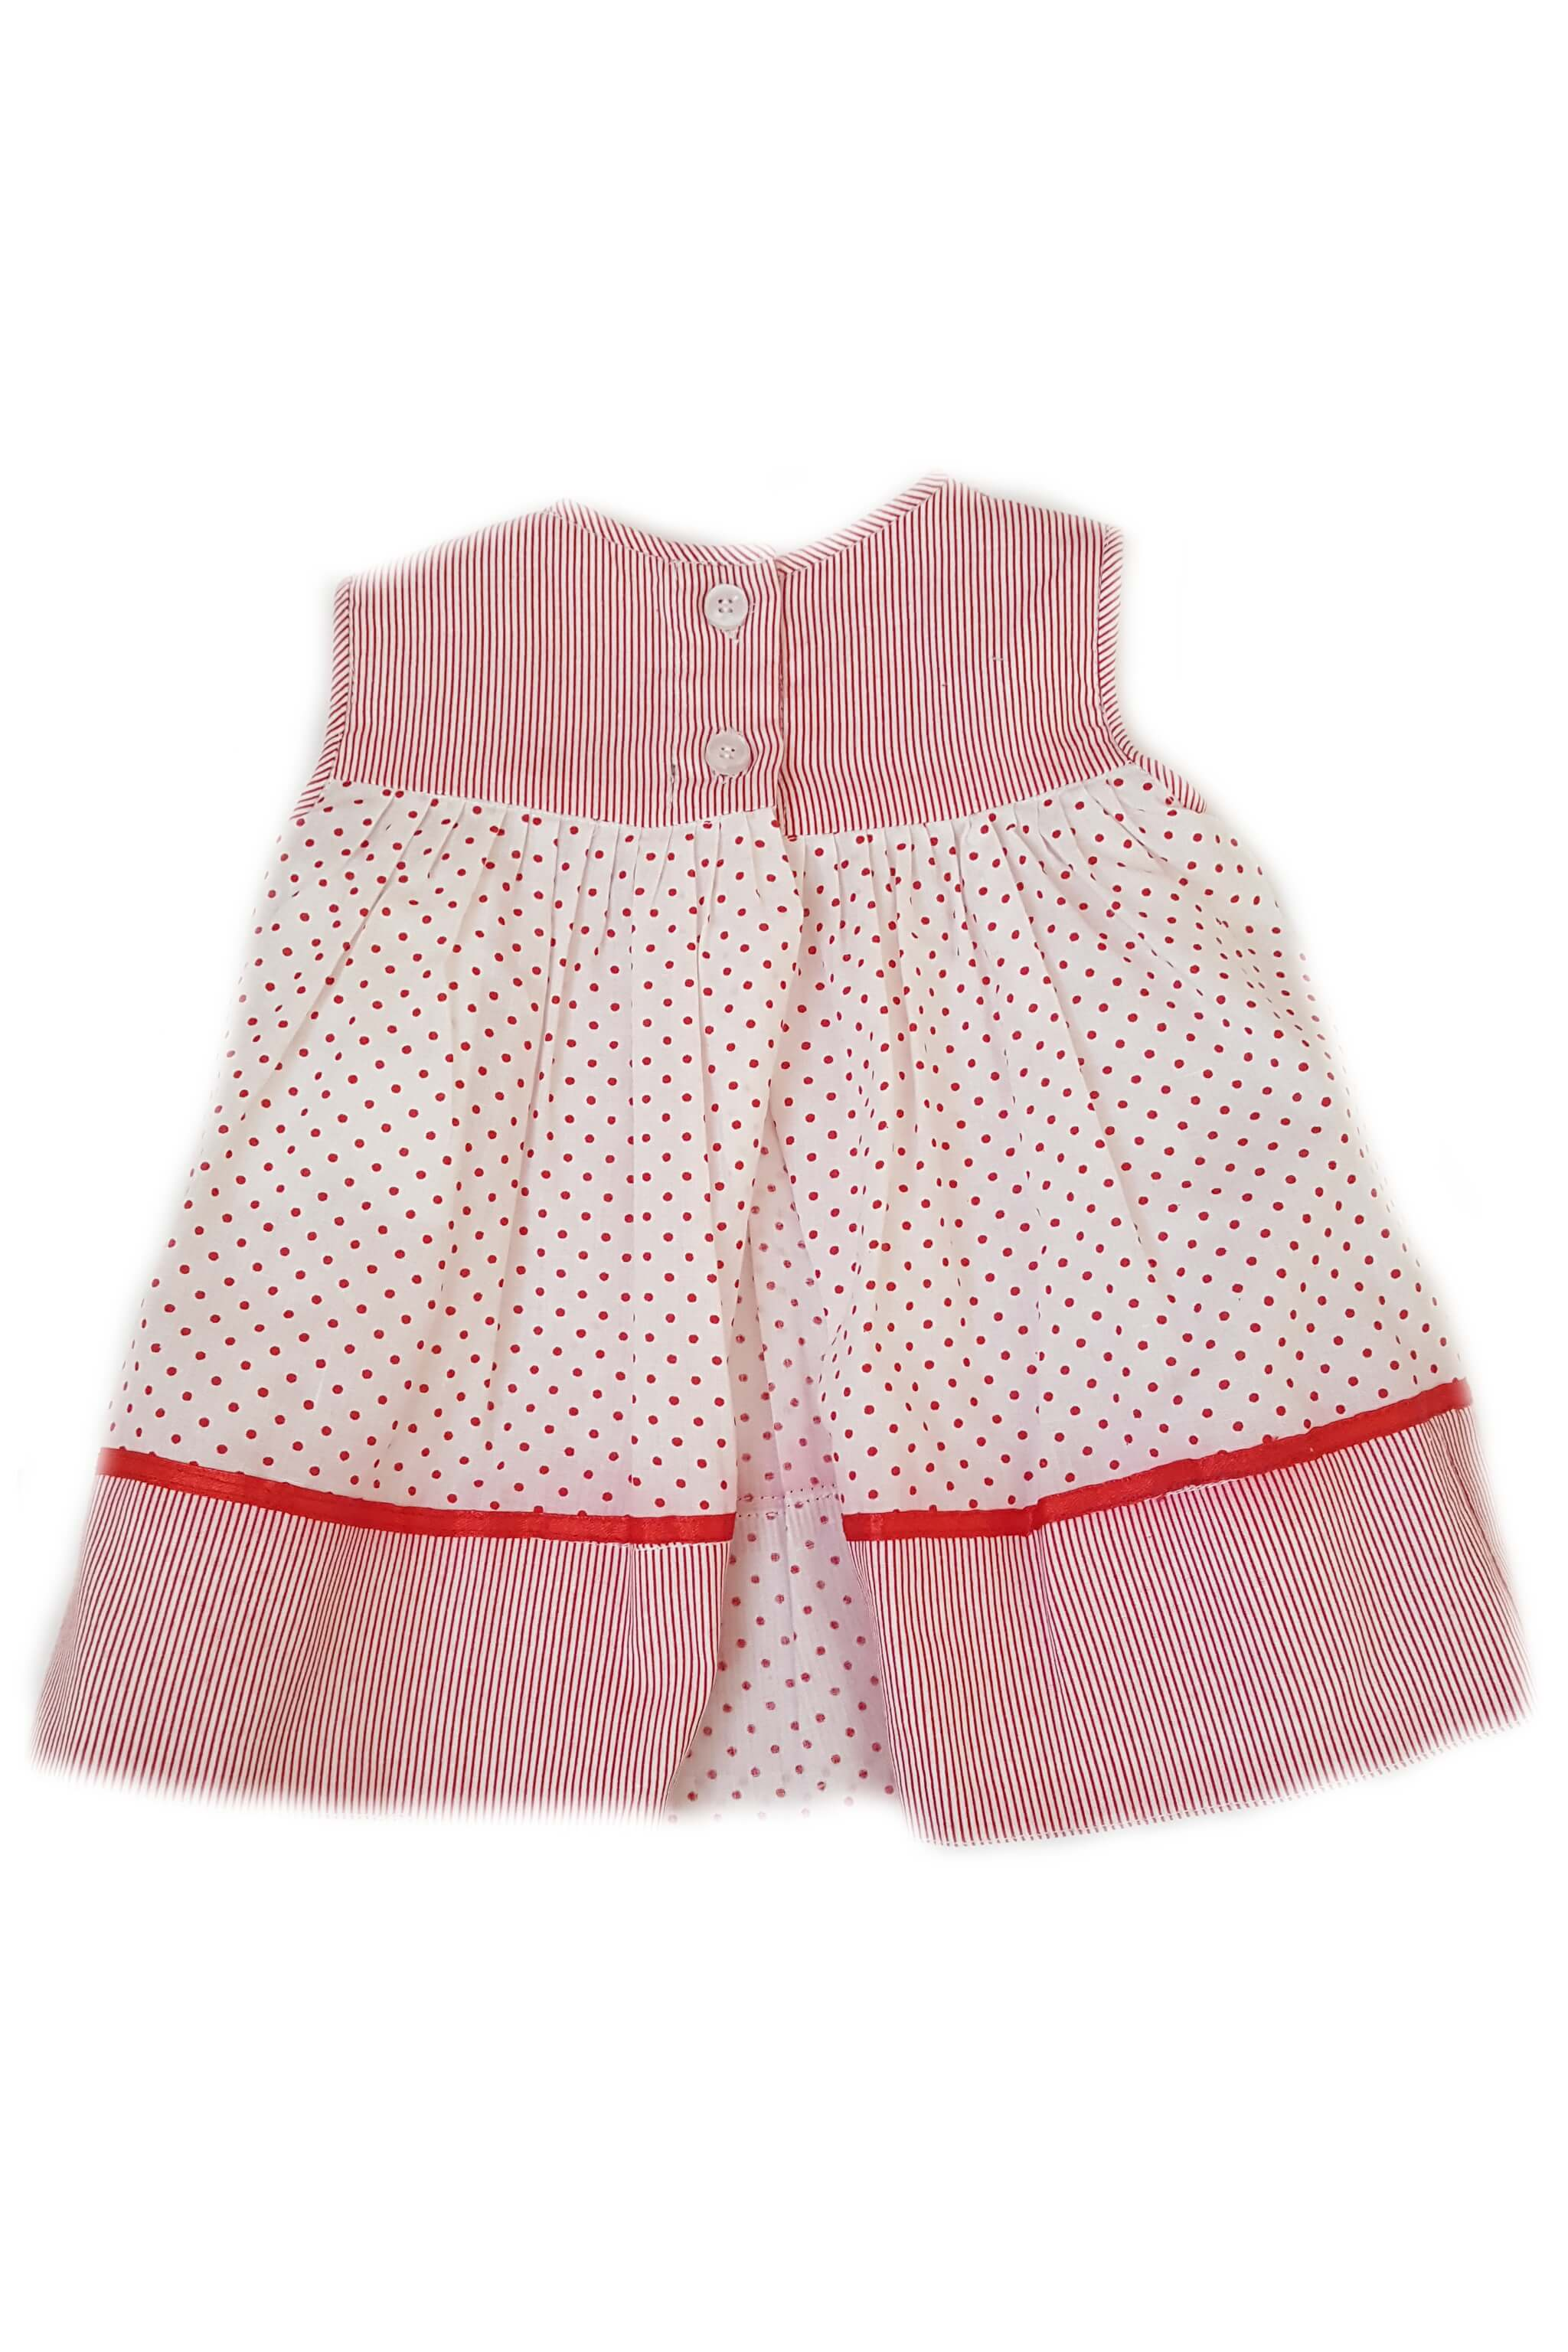 Back of red pin dot striped baby girl dress with back opening that is ethically made